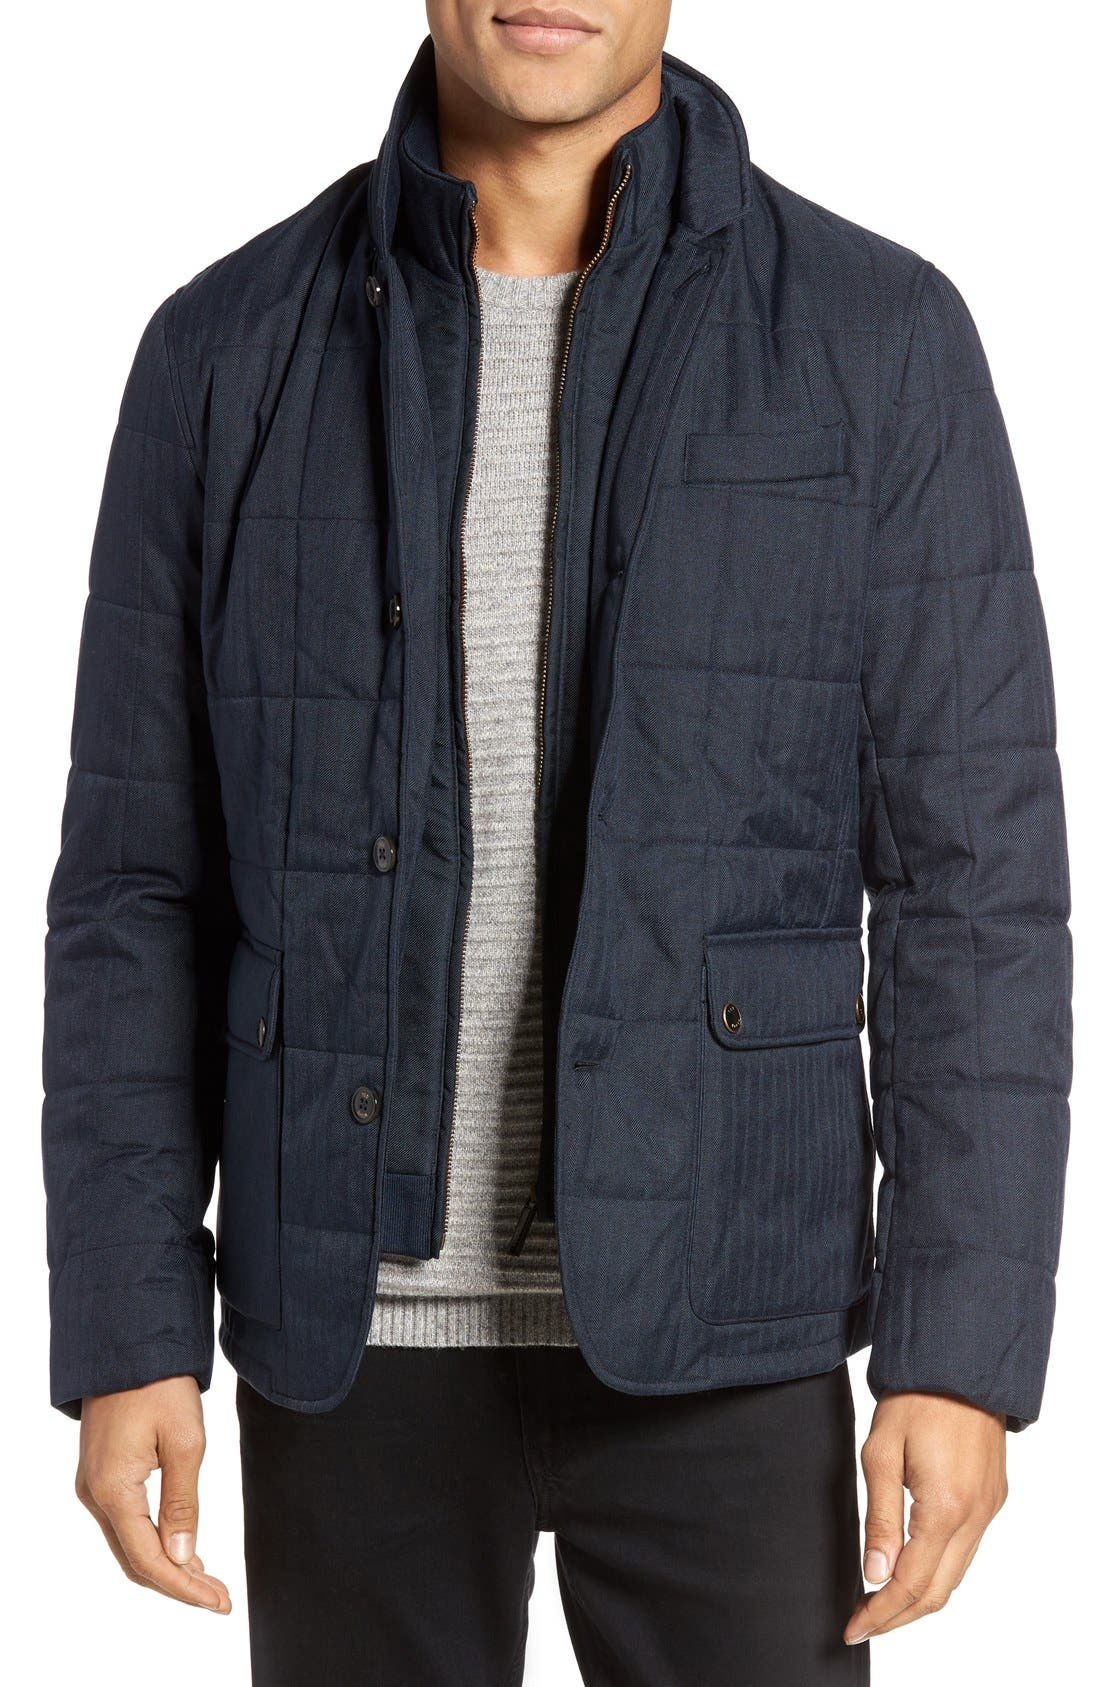 Main Image - Ted Baker London Jasper Trim Fit Quilted Jacket with Removable Bib